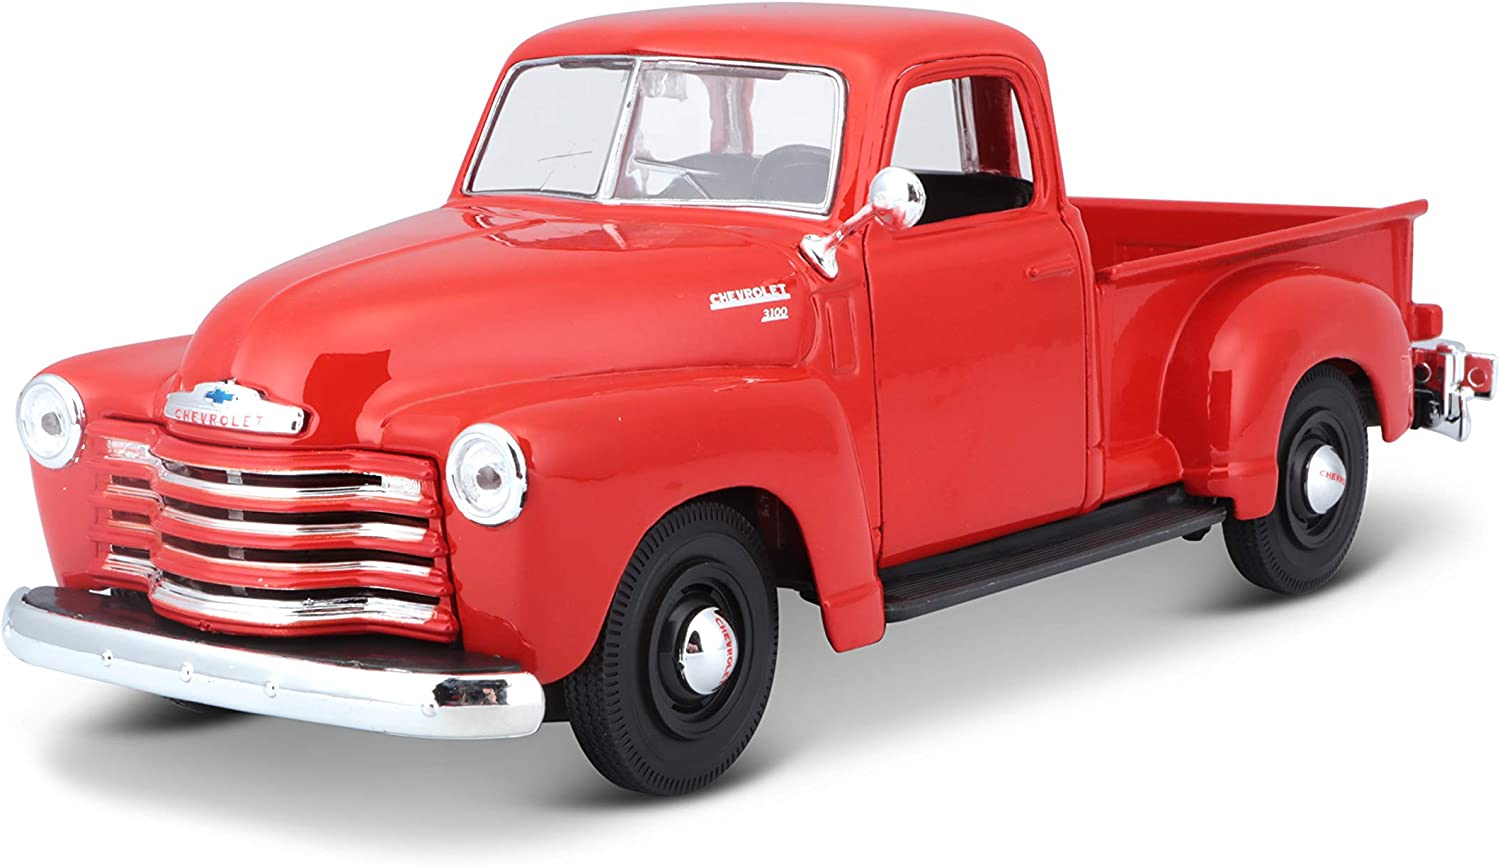 Maisto 1:25 Scale 1950 Chevrolet 3100 Pickup Diecast Truck Vehicle (Colors May Vary)